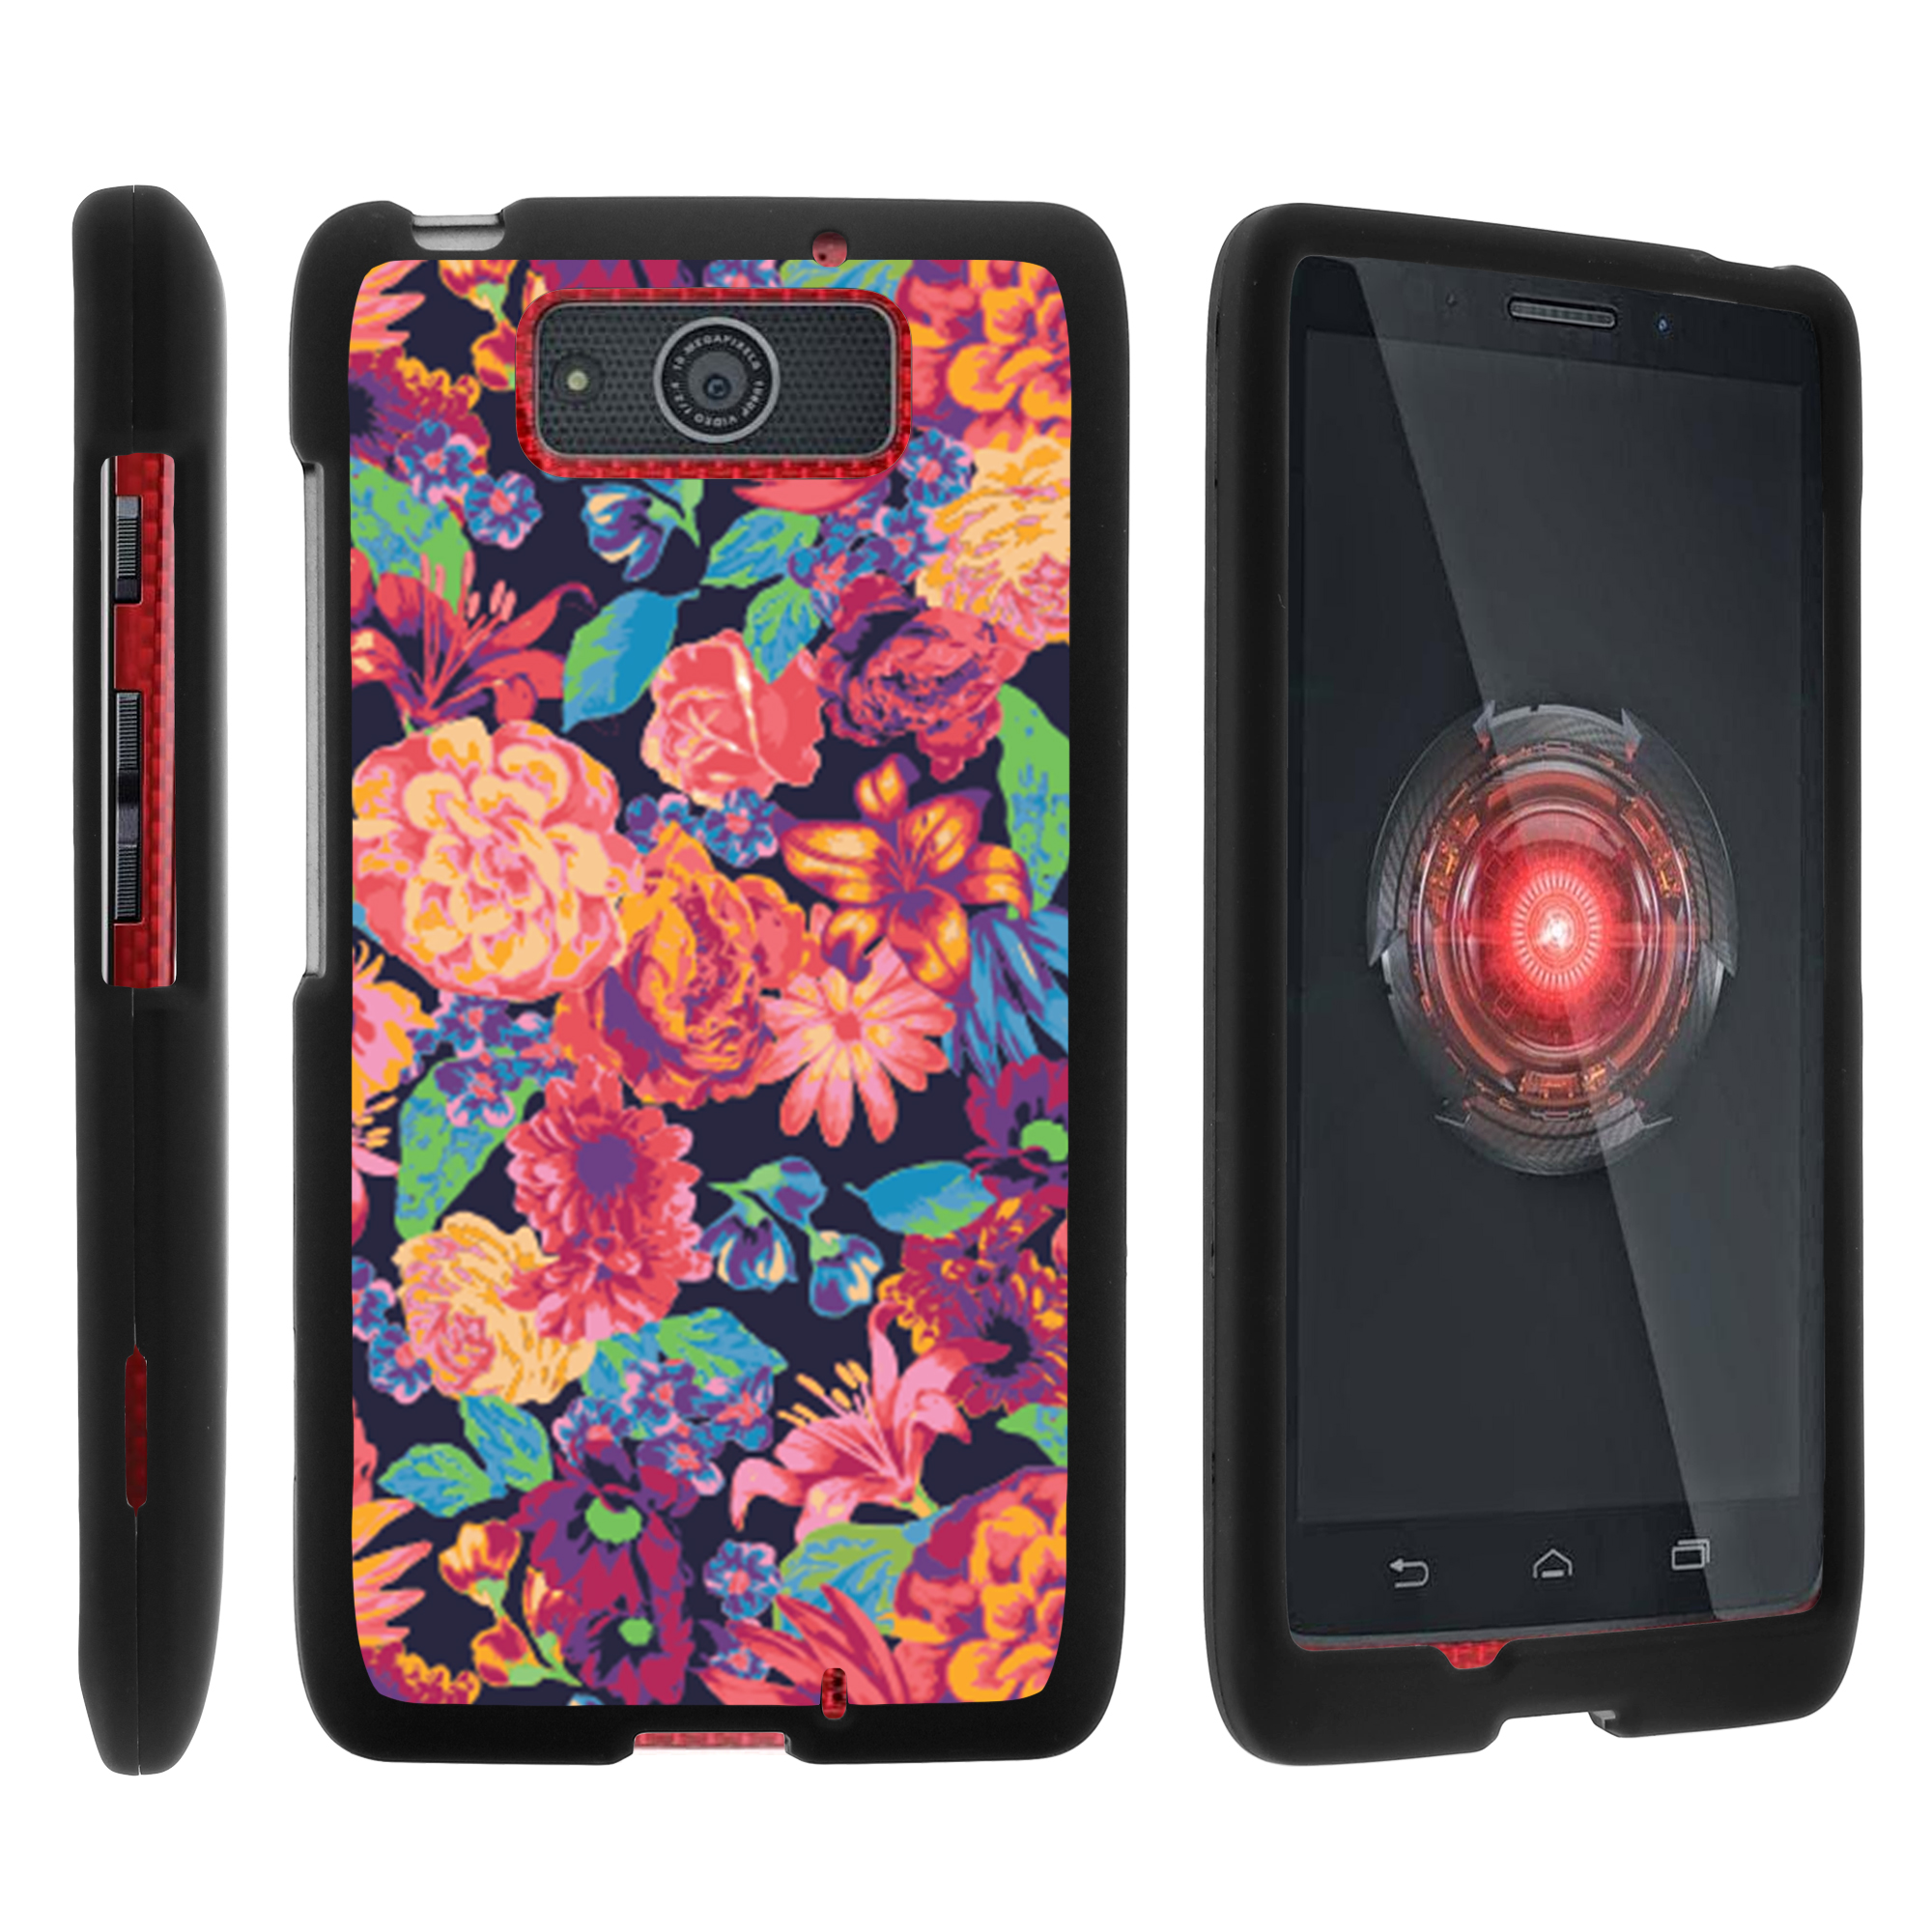 Motorola Droid Ultra XT1080 | Droid Maxx XT1080-M, [SNAP SHELL][Matte Black] 2 Piece Snap On Rubberized Hard Plastic Cell Phone Case with Exclusive Art - Floral Dream